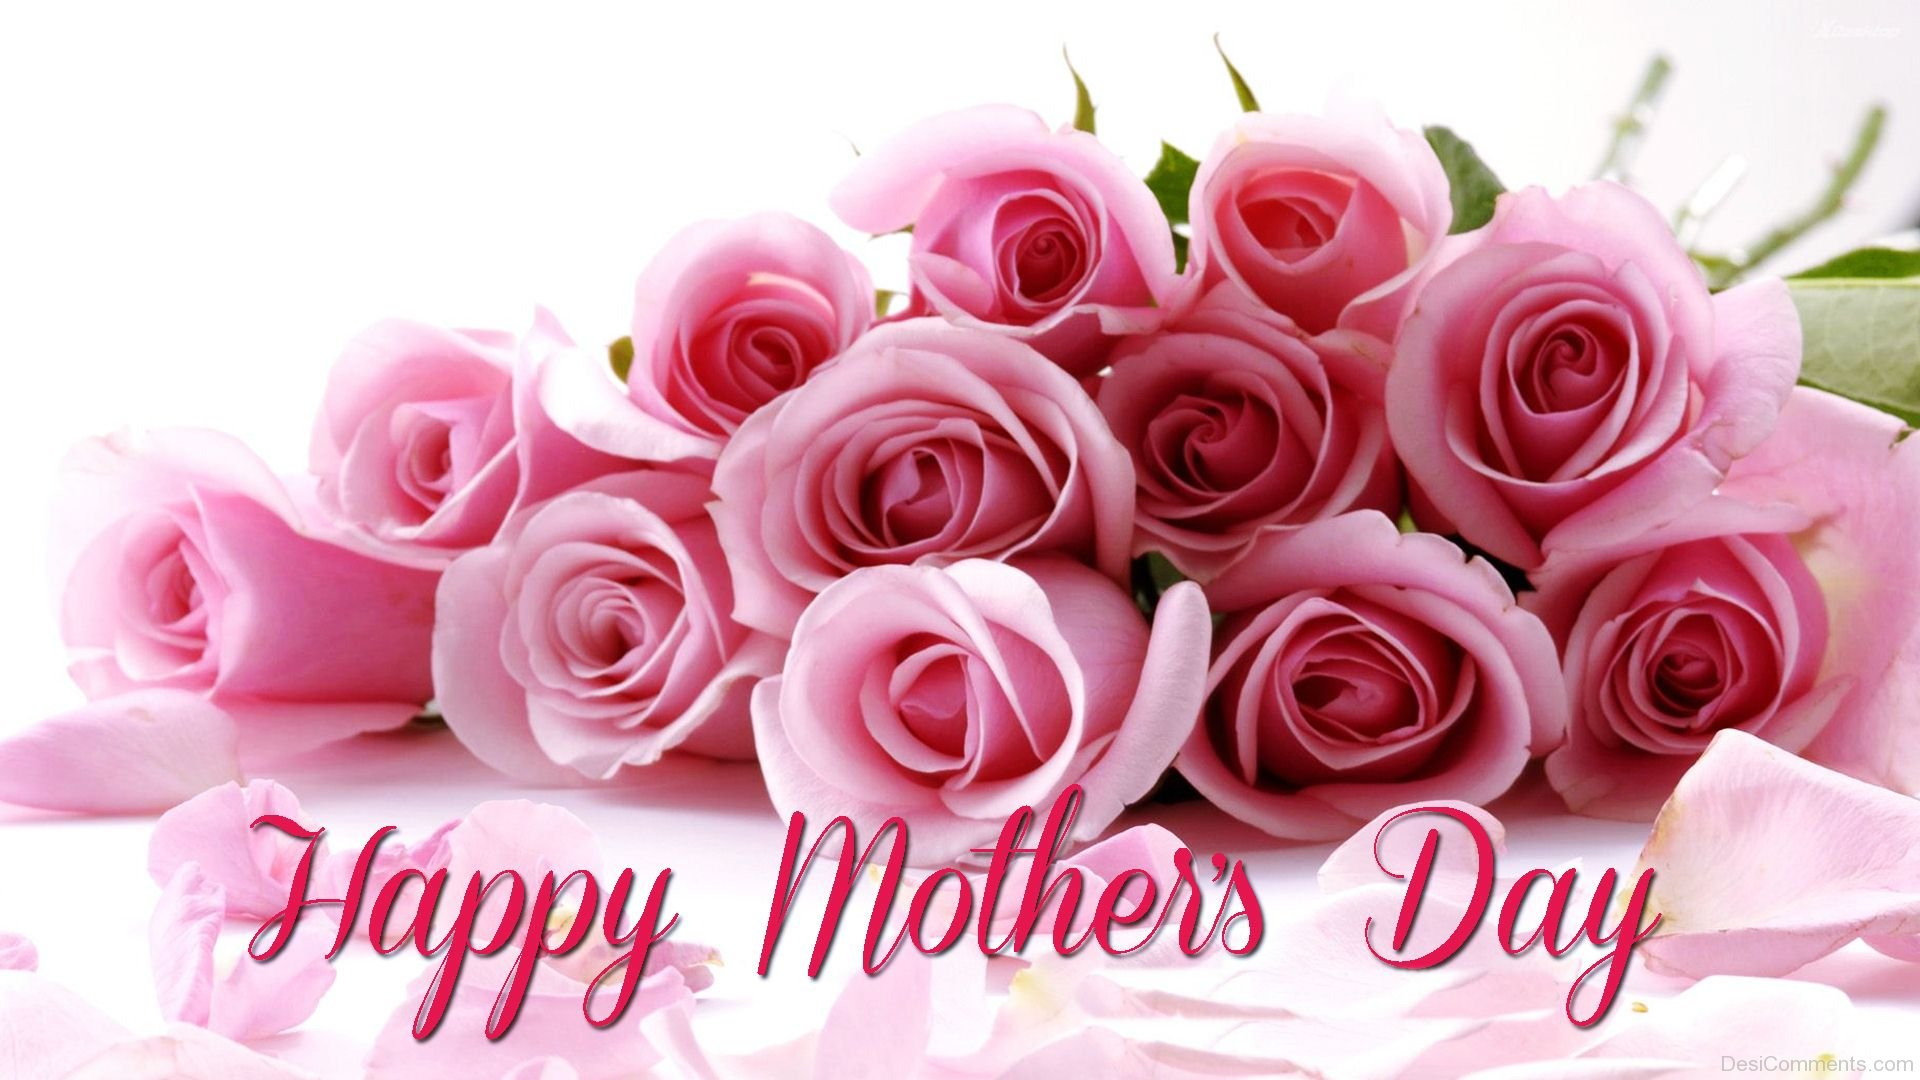 Mothers Day 2017 Images for Whatsapp